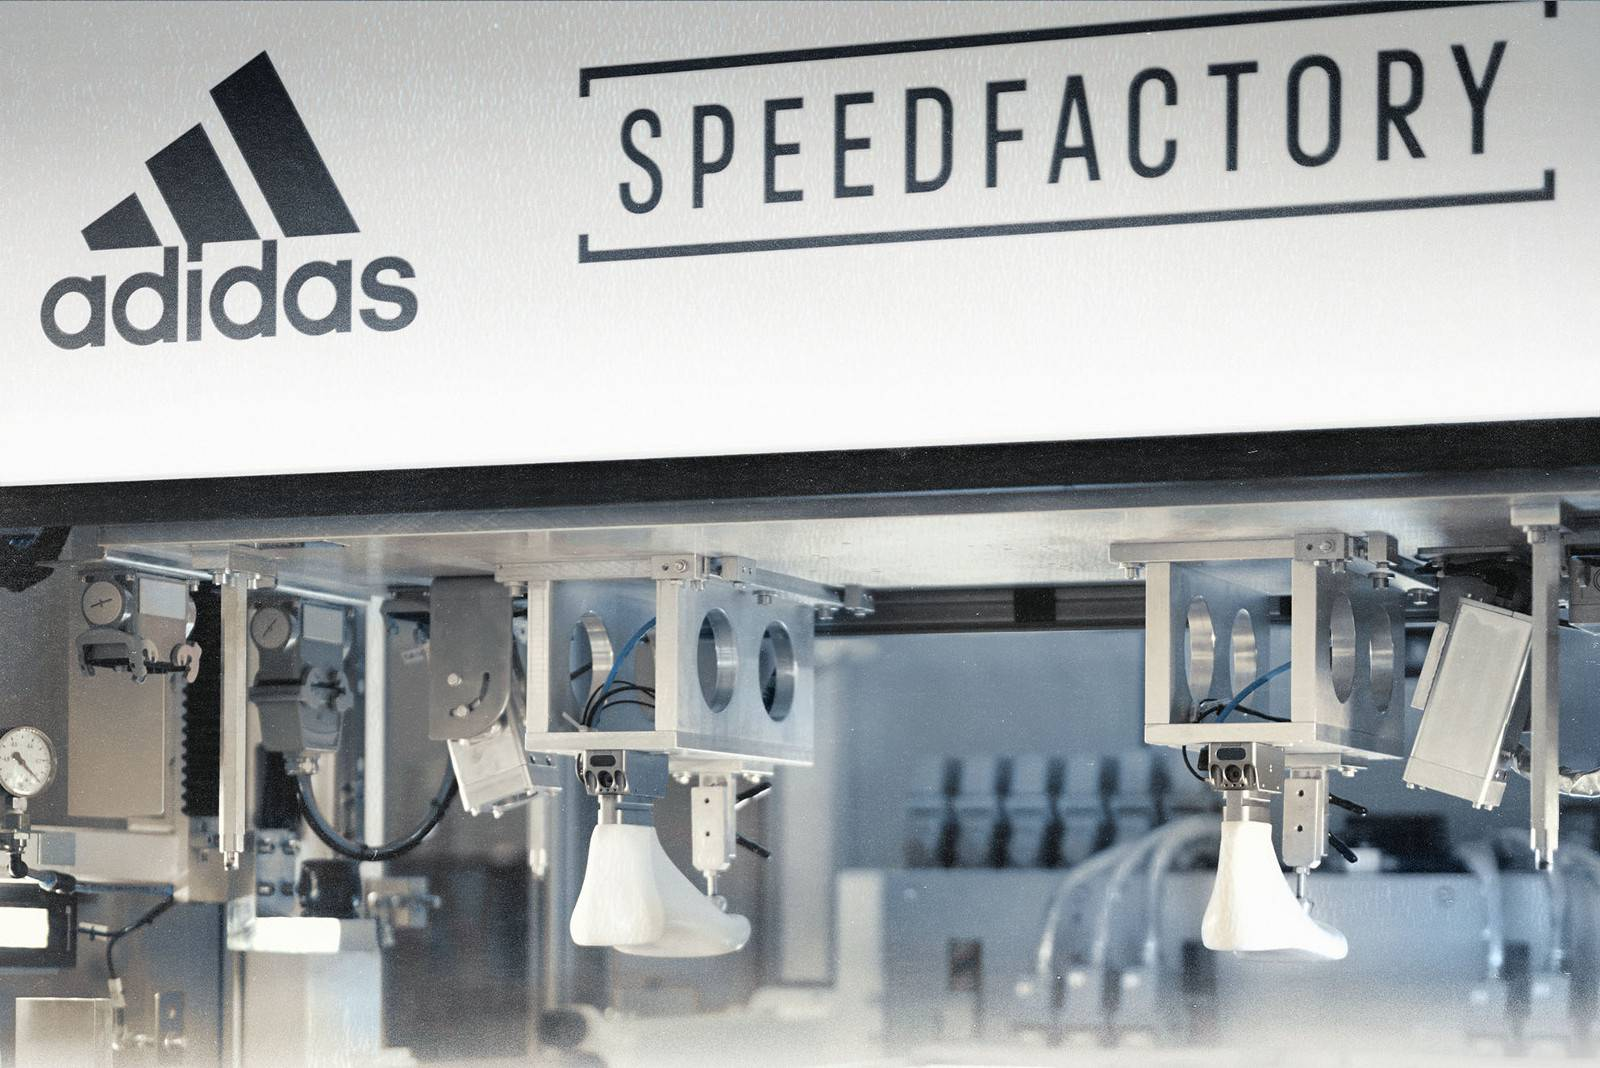 finest selection 76ebf 12467 Adidas uses new speedfactories to customize apparel